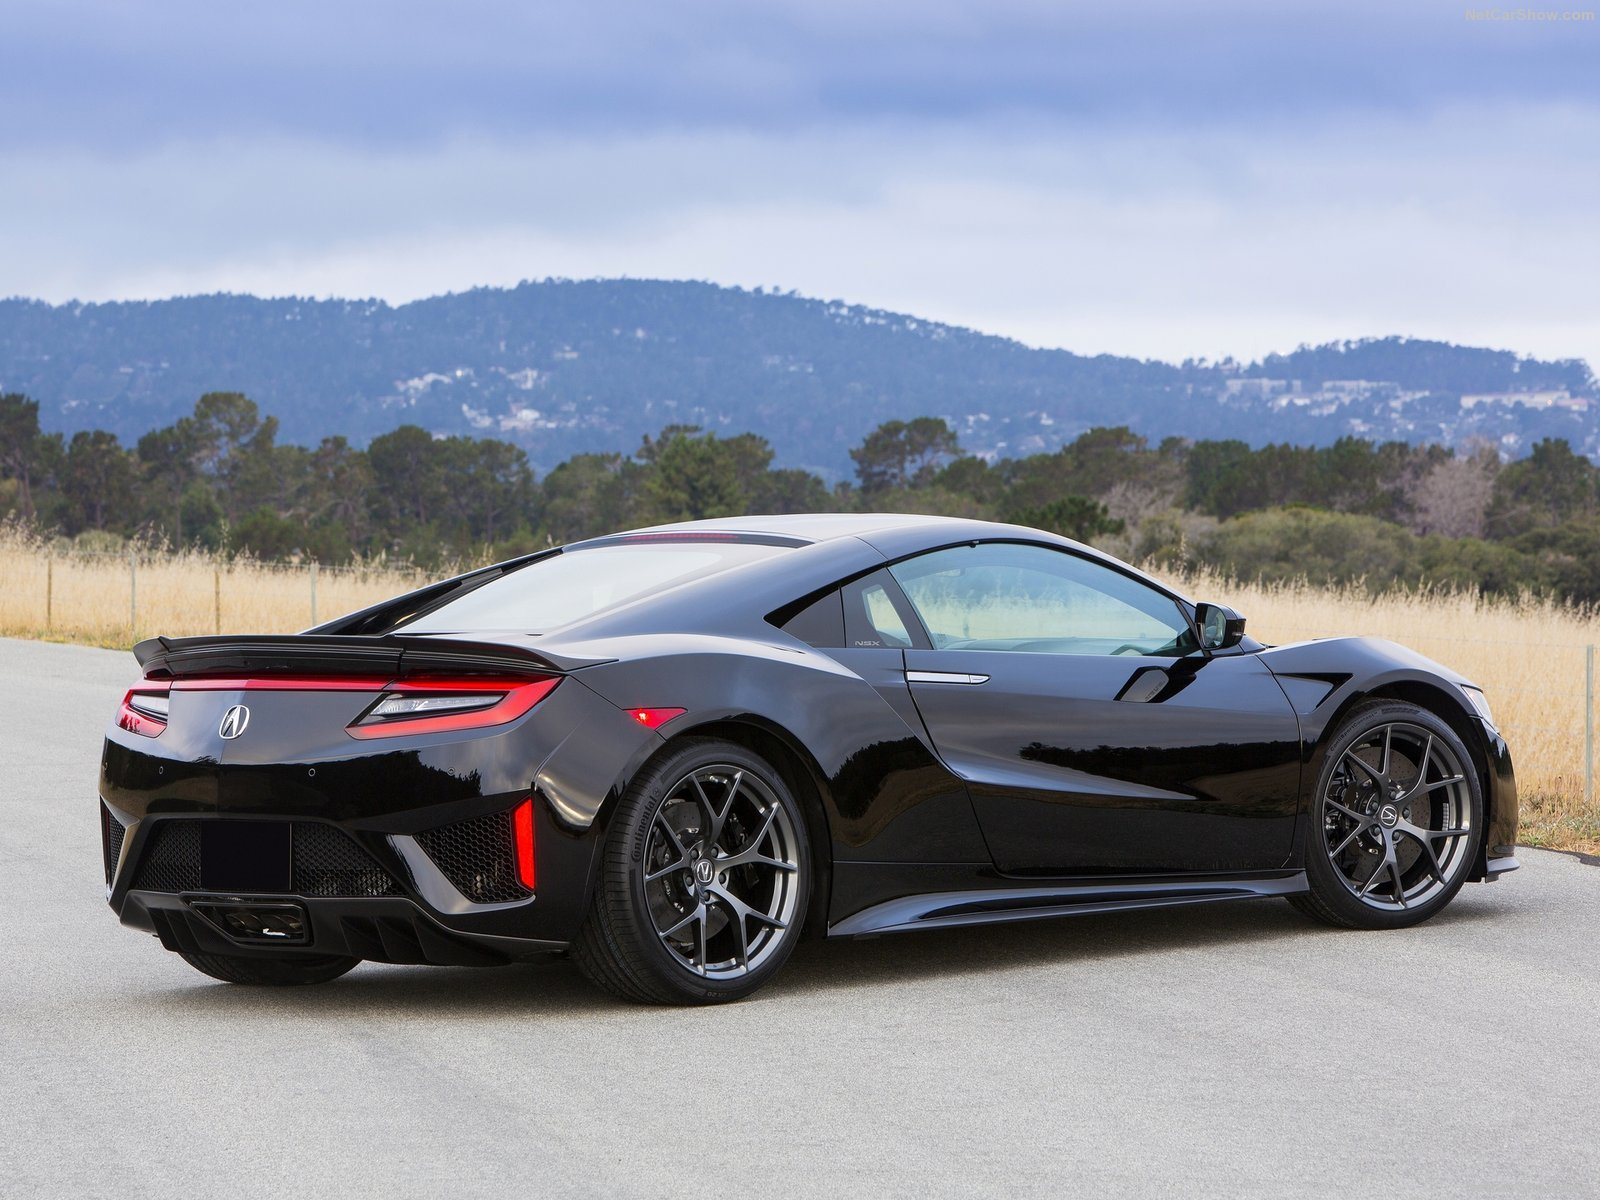 2016 acura cars Coupe nsx supercars wallpaper  1600x1200  777762